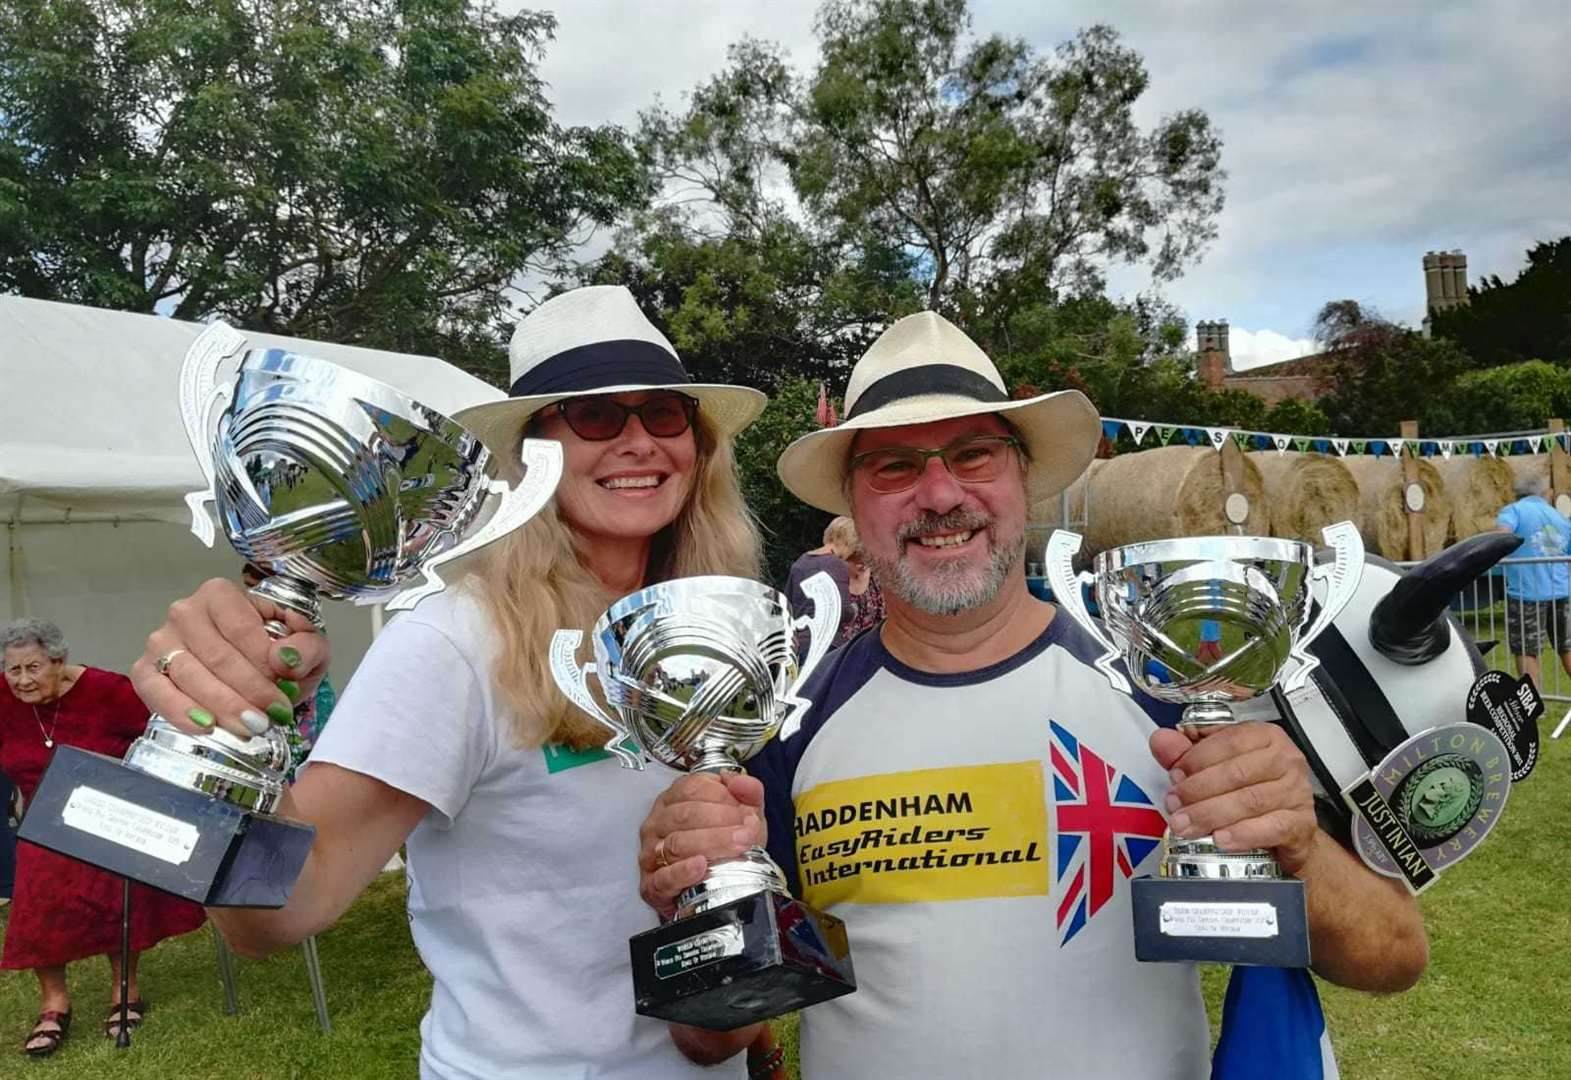 Sally defends world pea shooting title